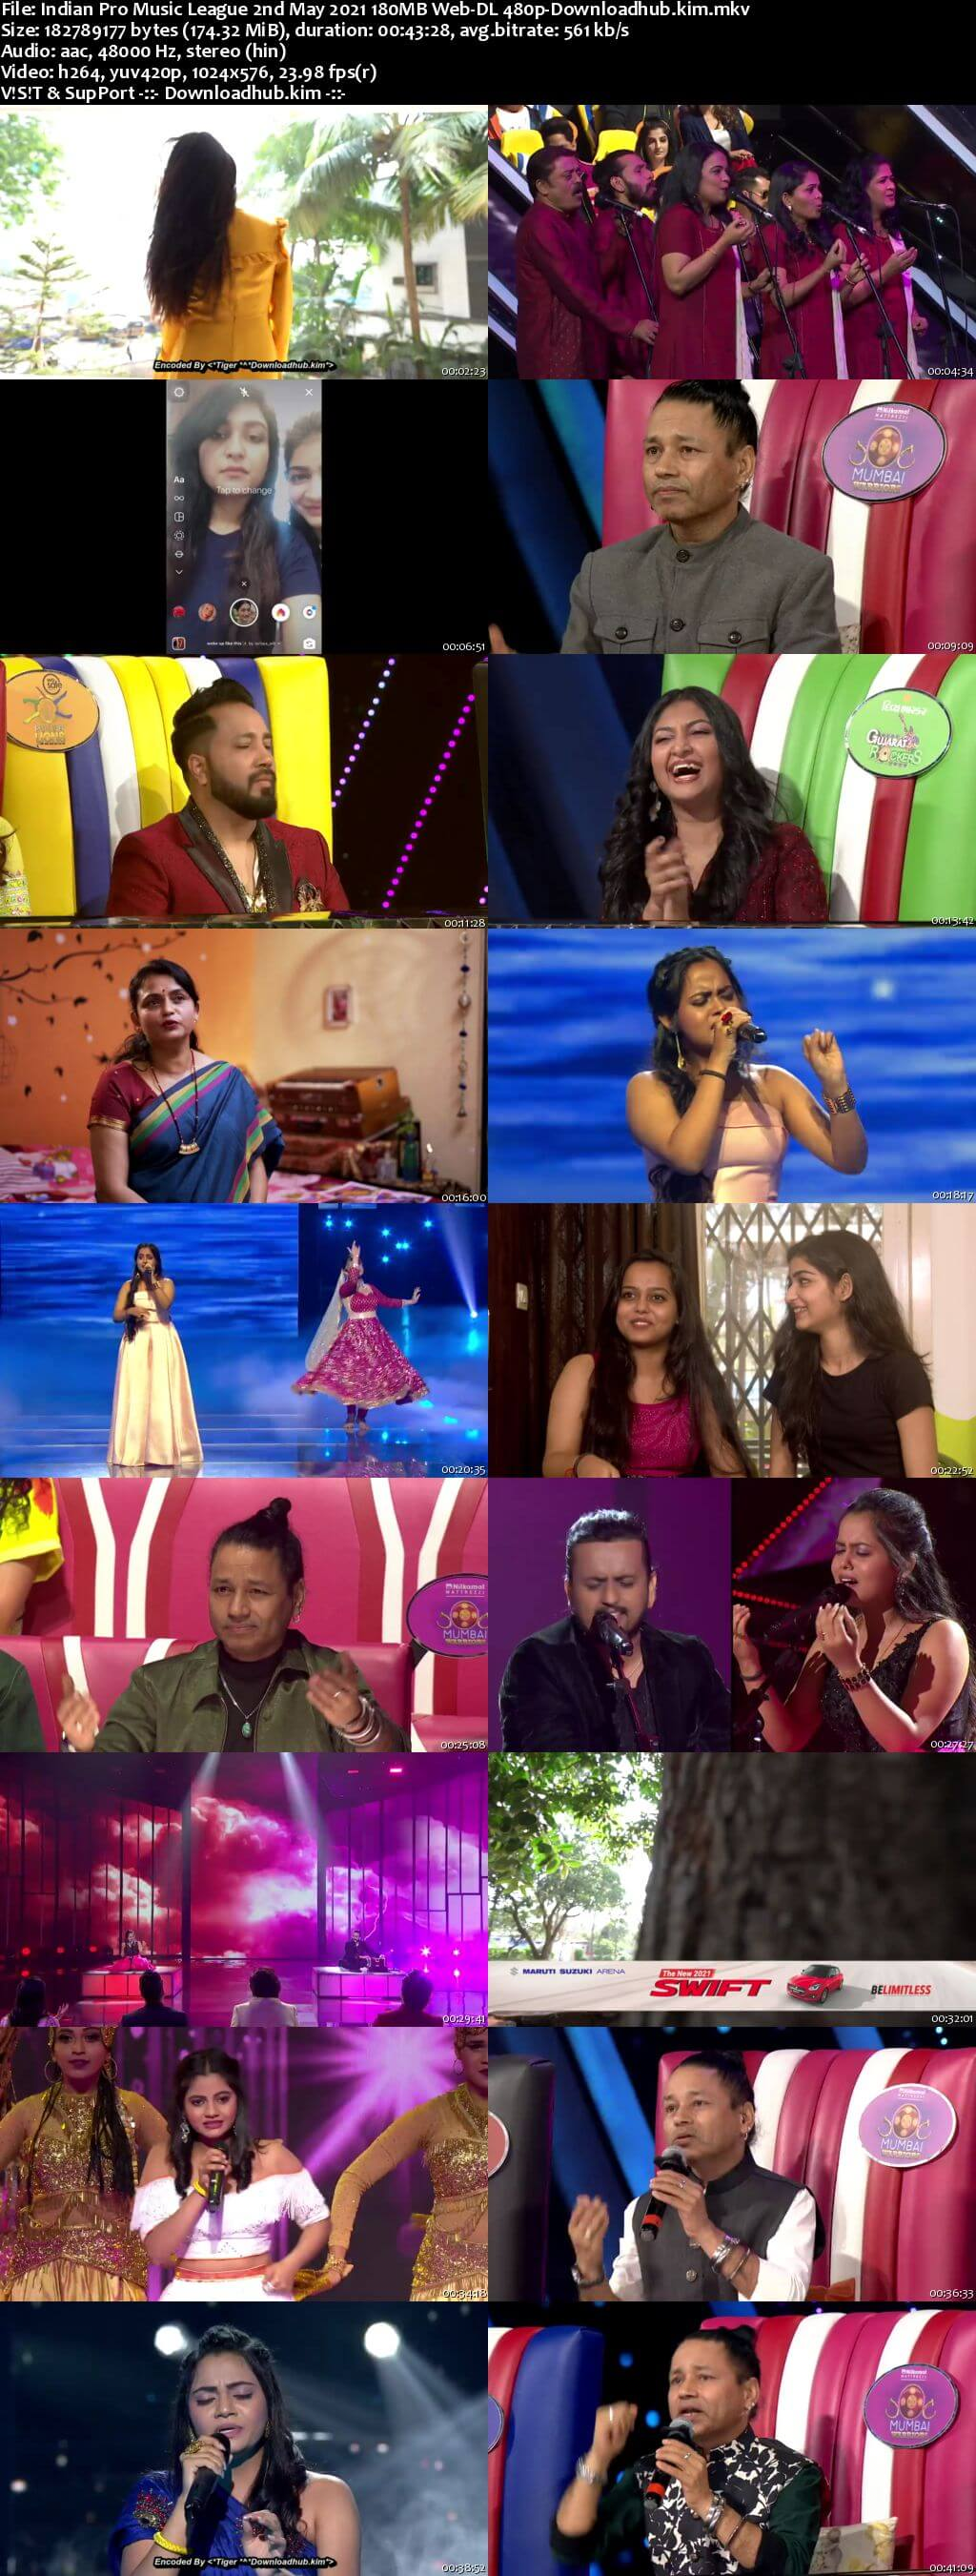 Indian Pro Music League 2nd May 2021 180MB Web-DL 480p